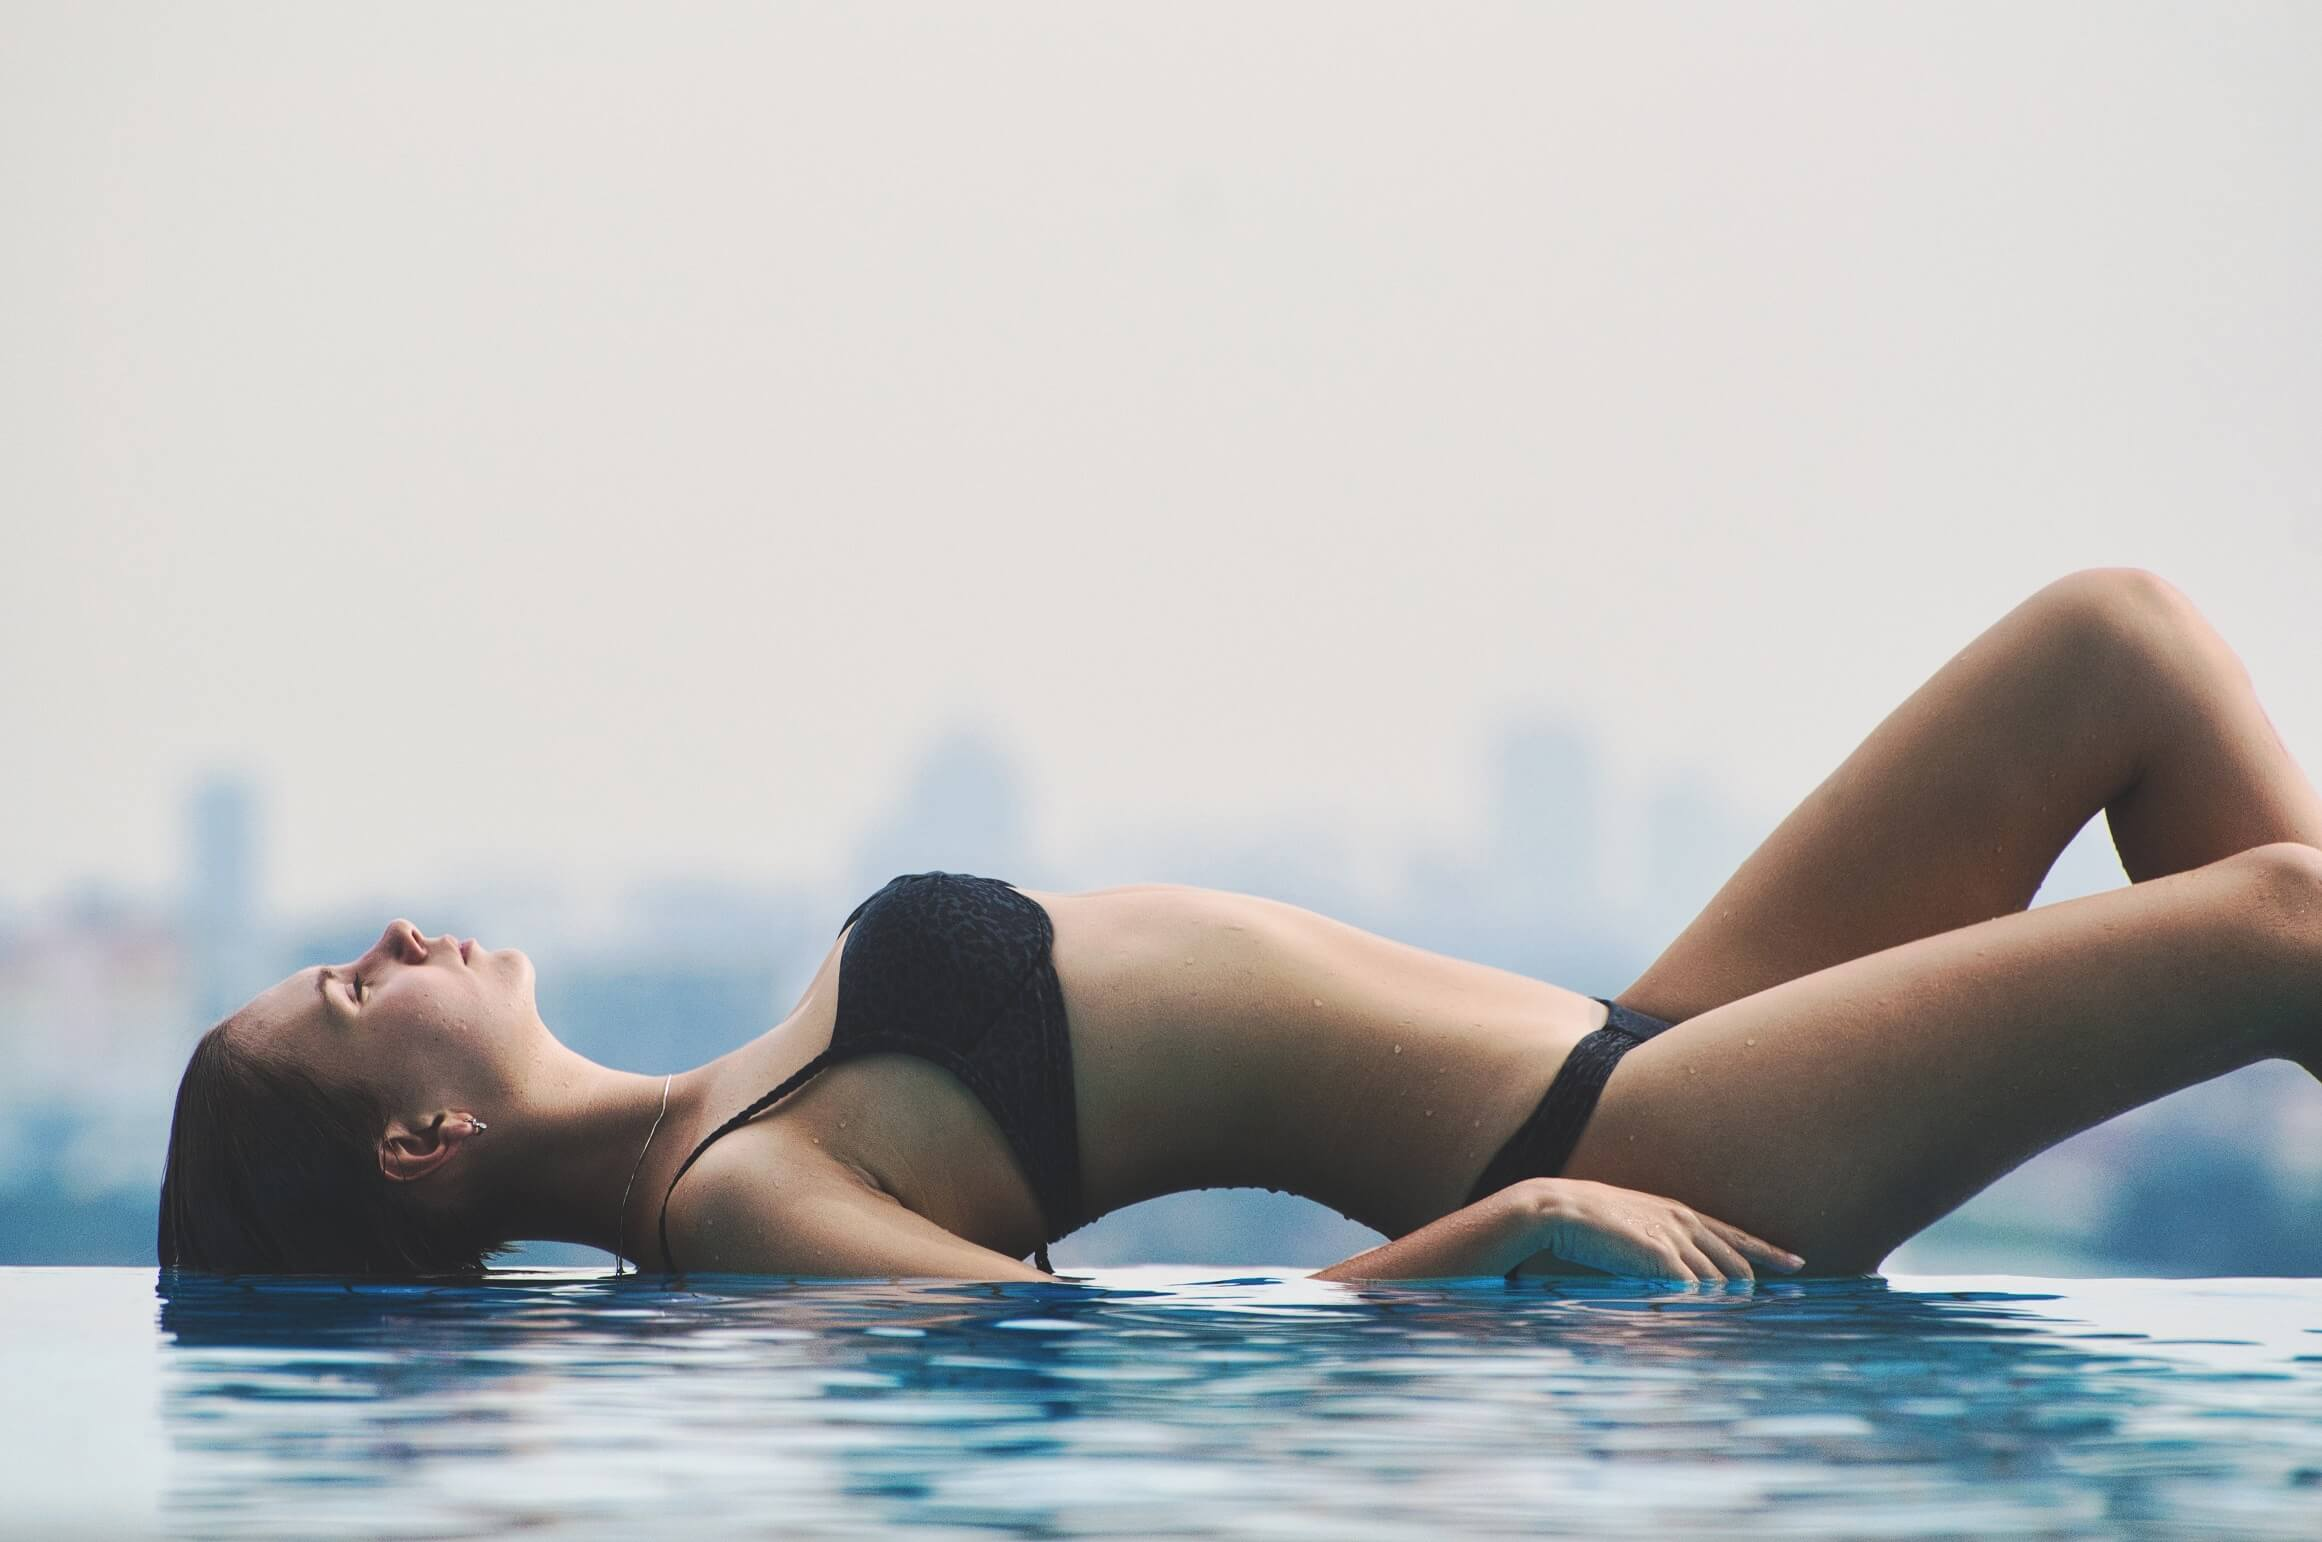 A woman wearing a bikini lies on the edge of an infinity pool provocatively. .